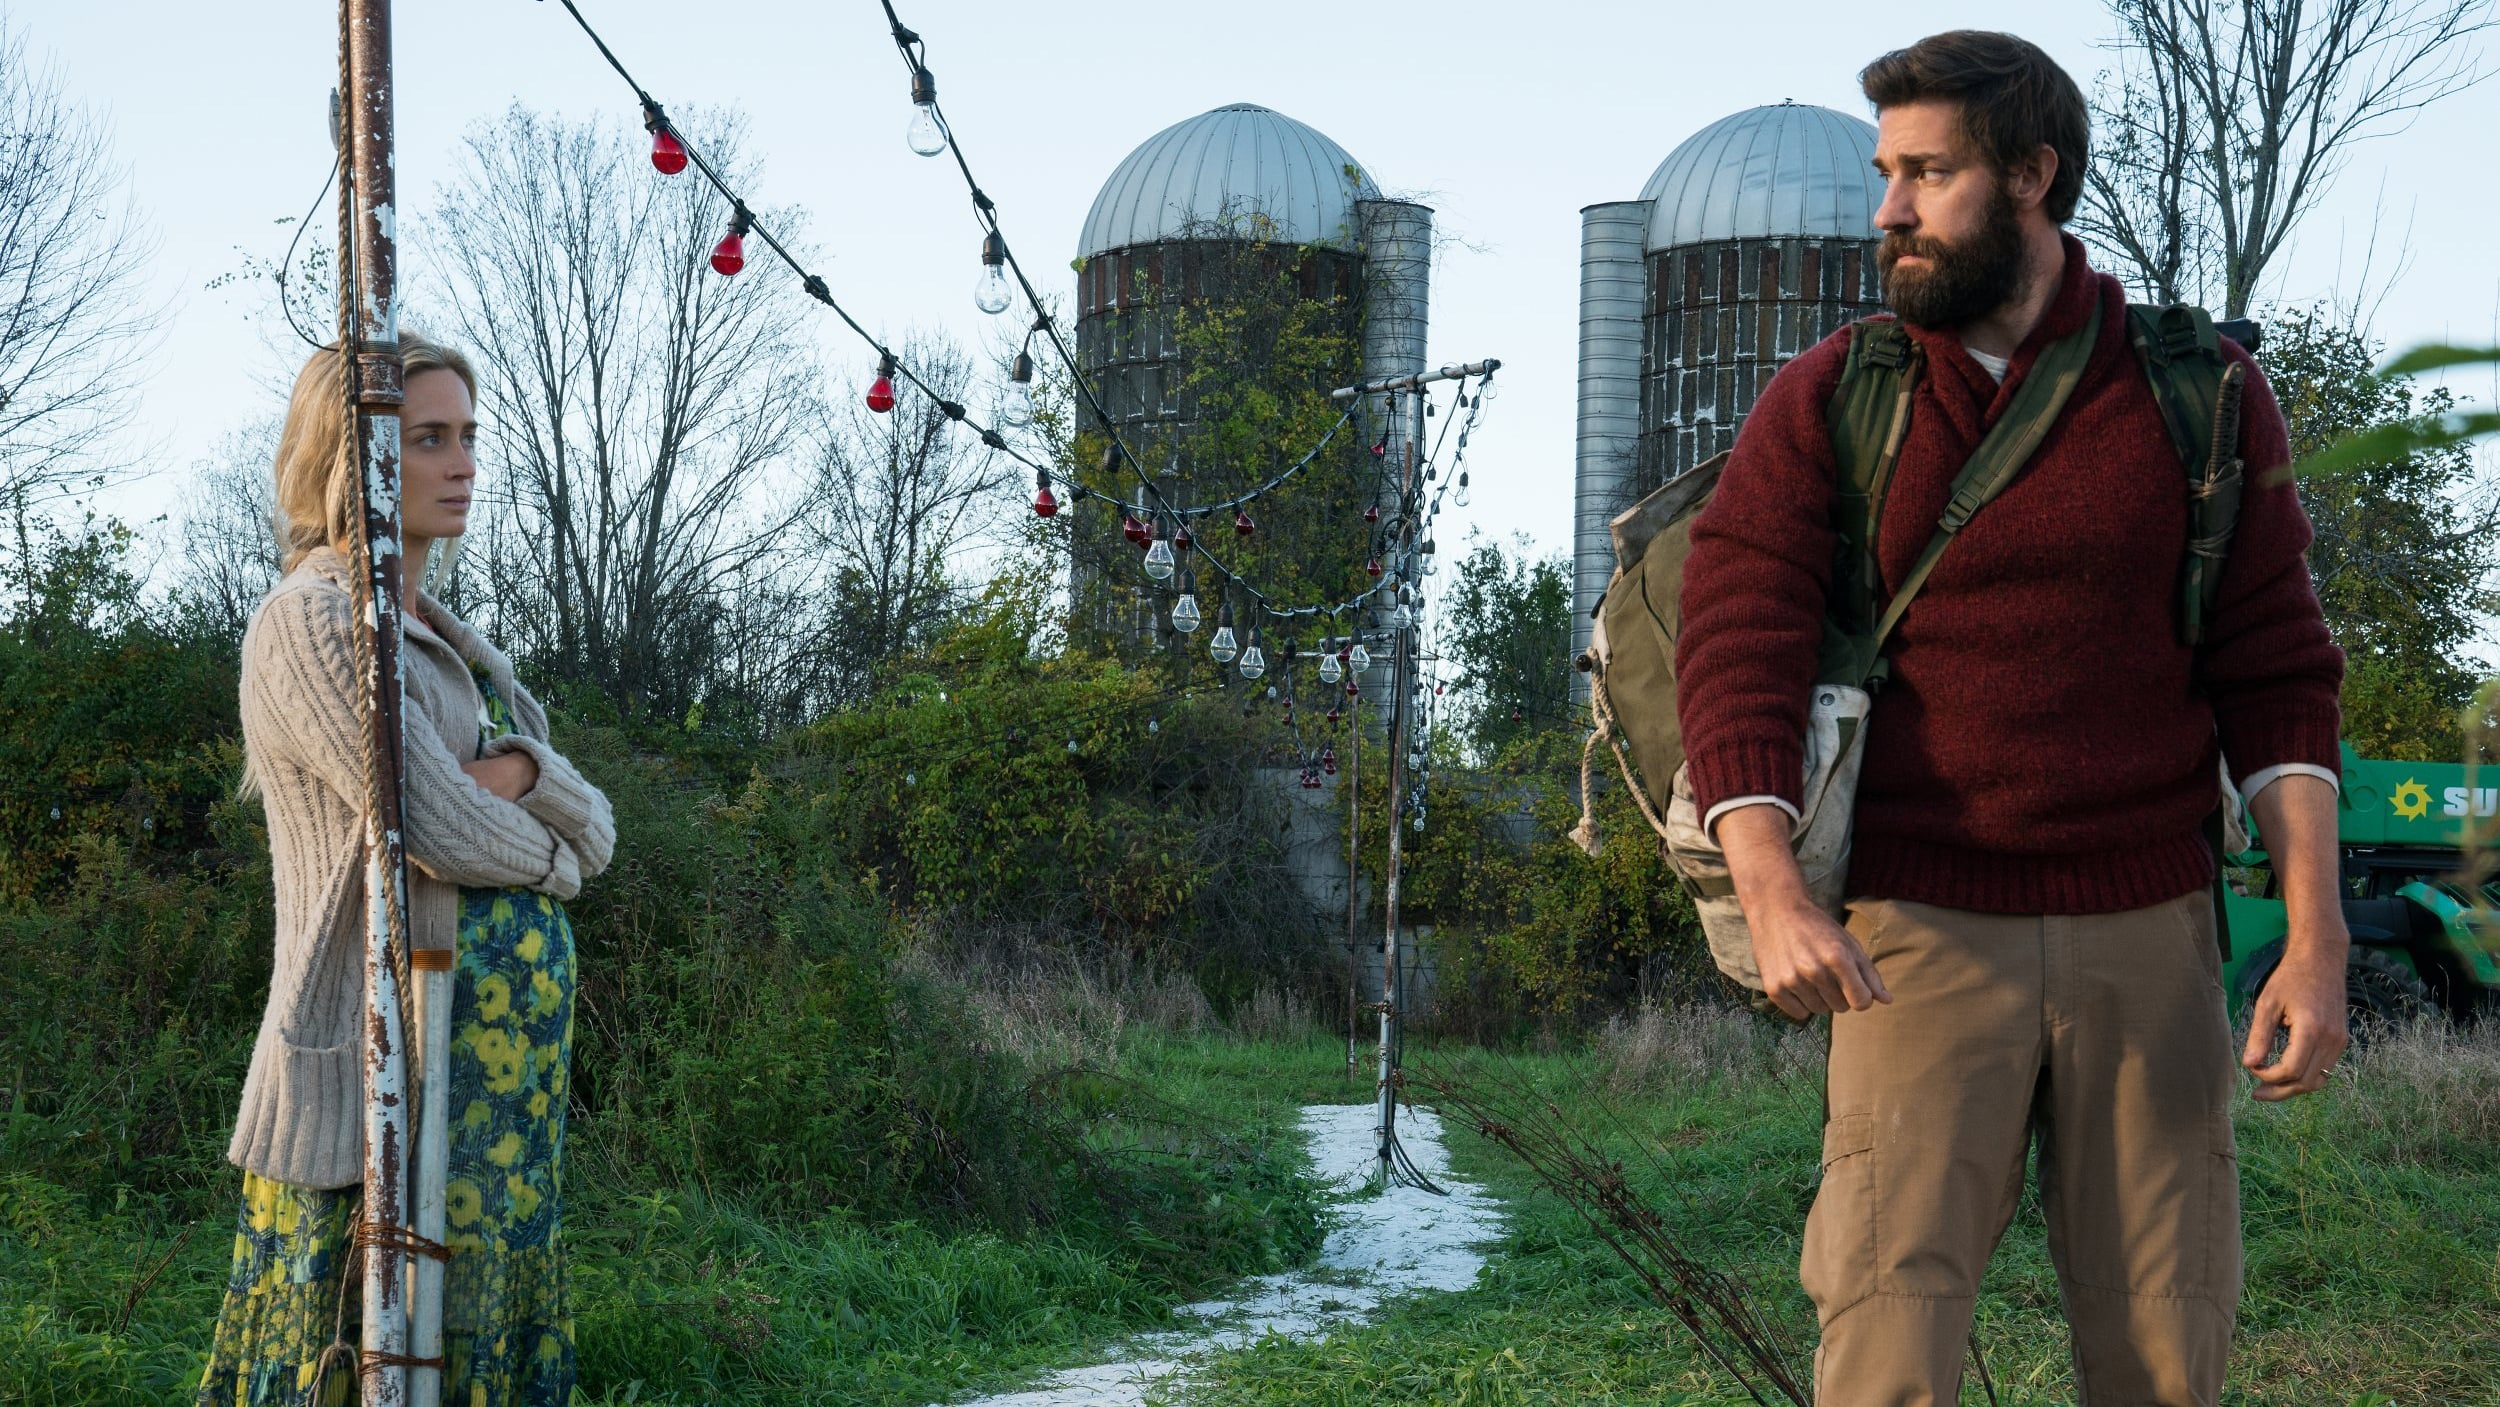 Teal Watch A Quiet Place Full Movies Online Free Hd A Quiet Quiet Place Dvdscr A Quiet Place Full Movie Online Free No Download A Quiet Place Full Movie Online Free English houzz 01 A Quiet Place Full Movie Online